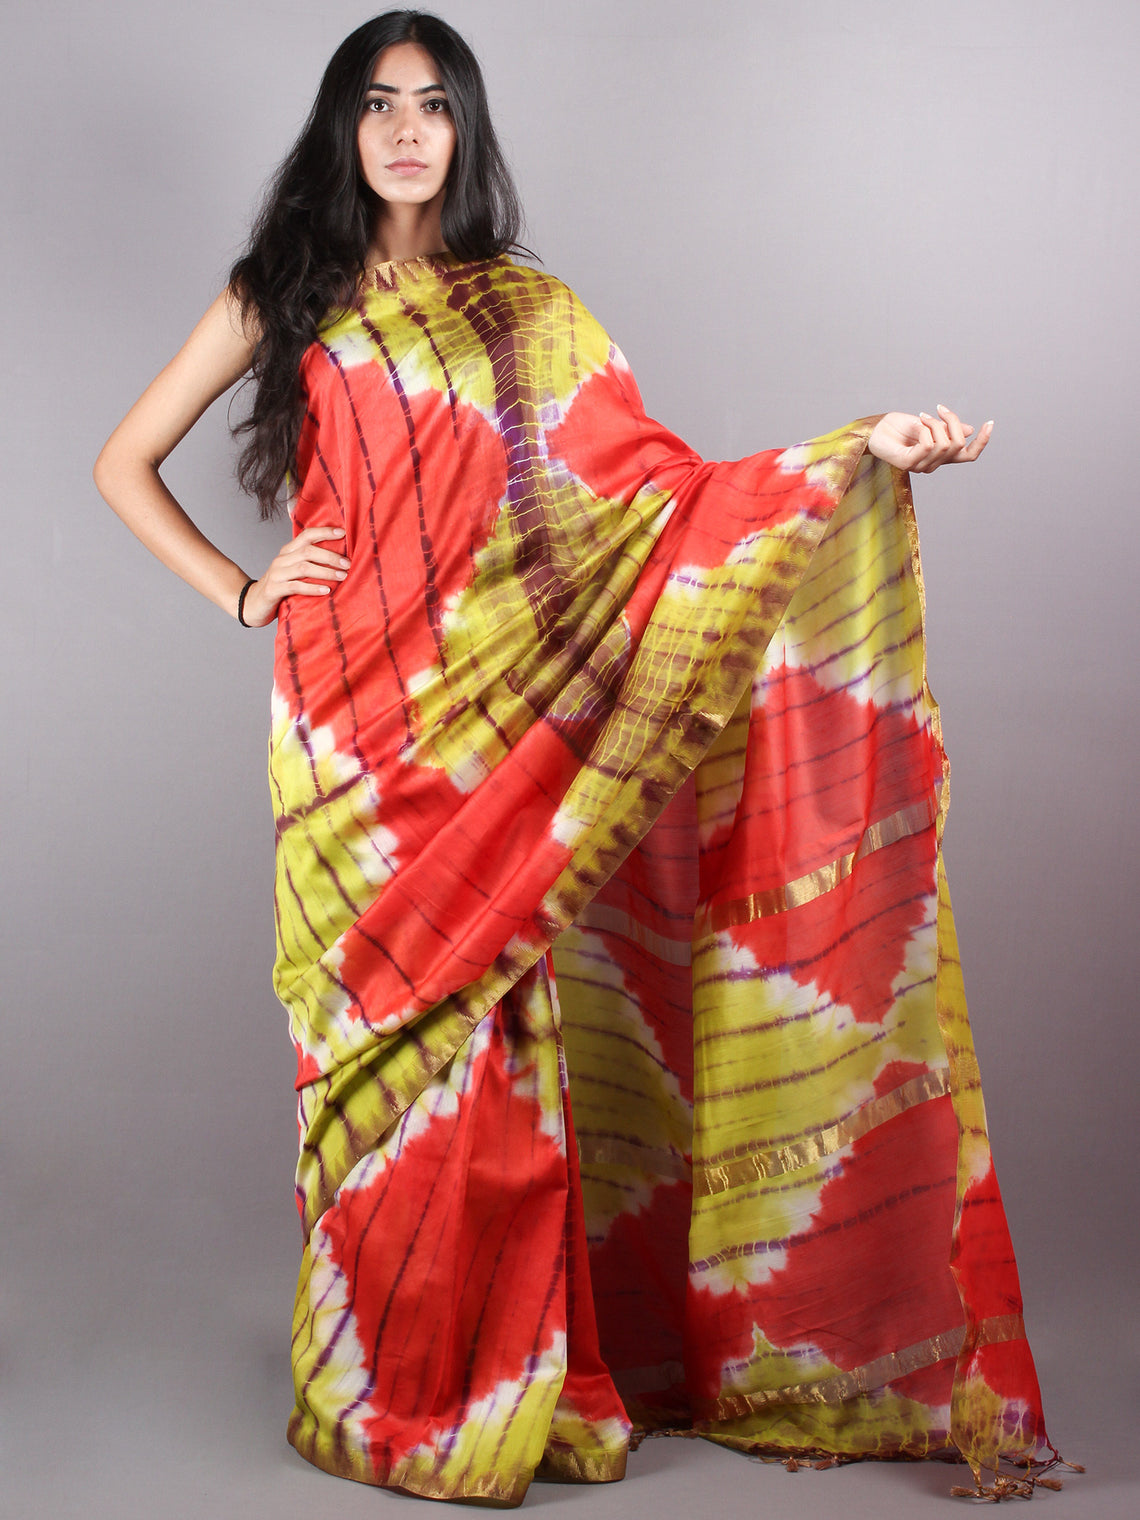 Red Mint Green Red Marvel Hand Shibori Dyed in Natural Colors Chanderi Saree with Geecha Border - S03170140